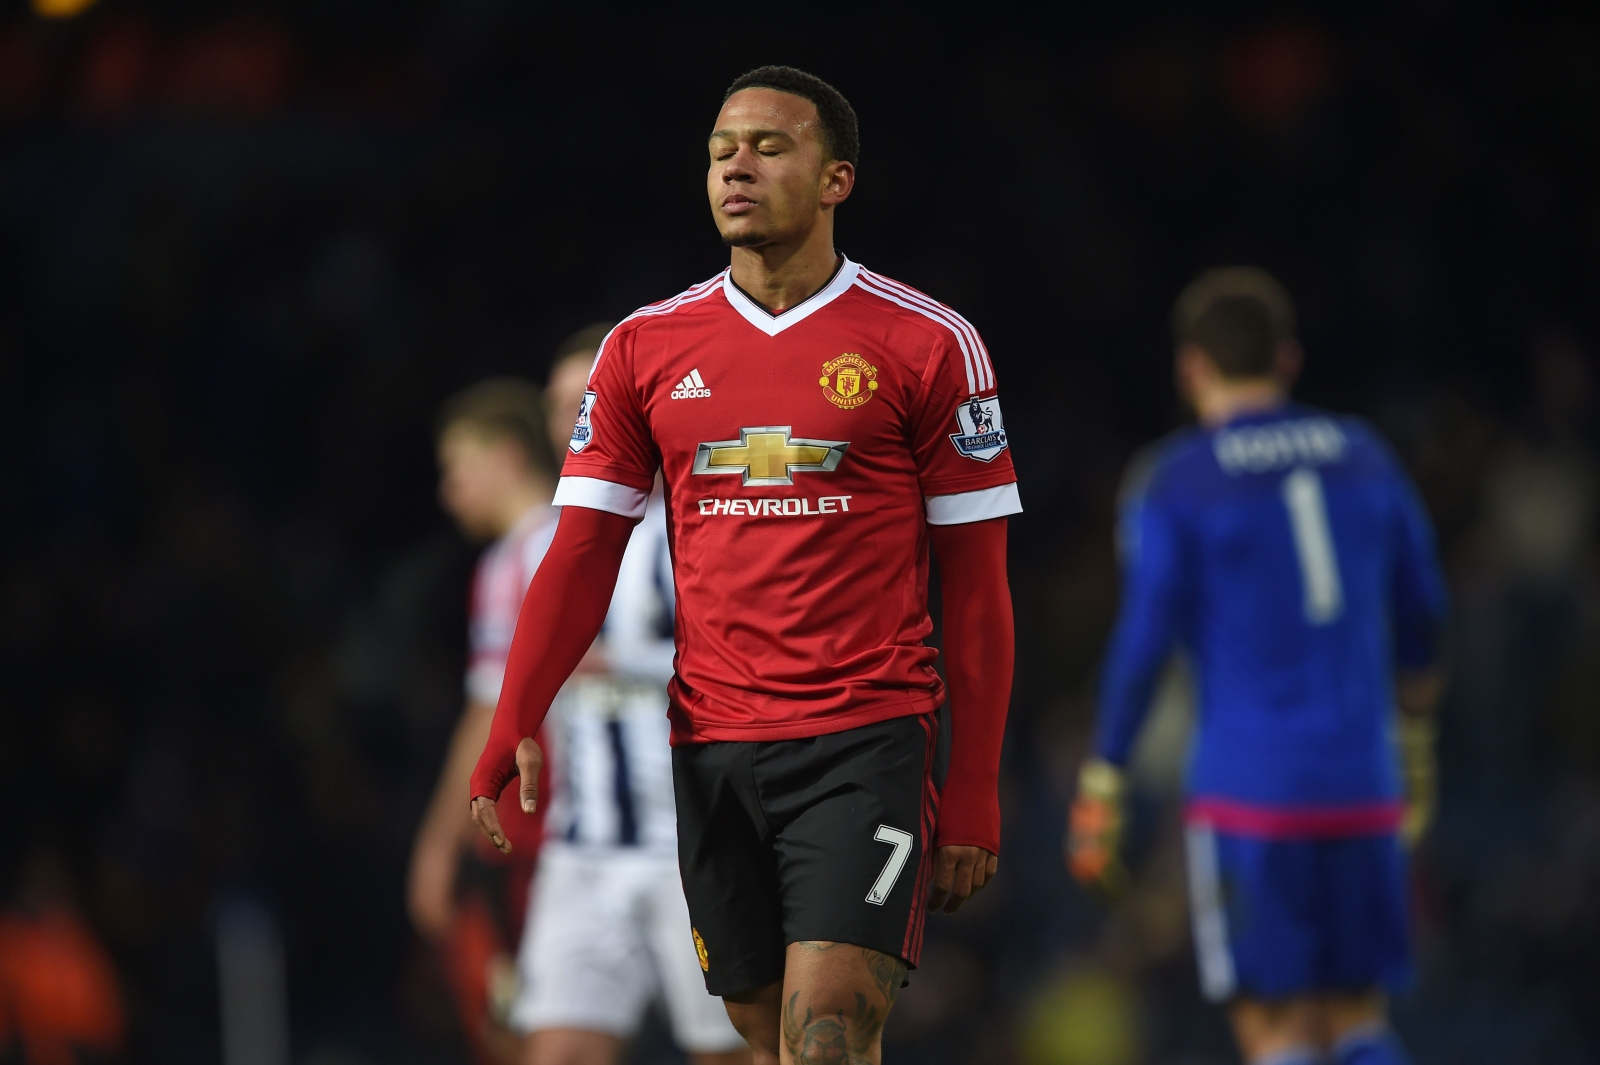 Manchester United winger Memphis Depay unhappy with supporting role